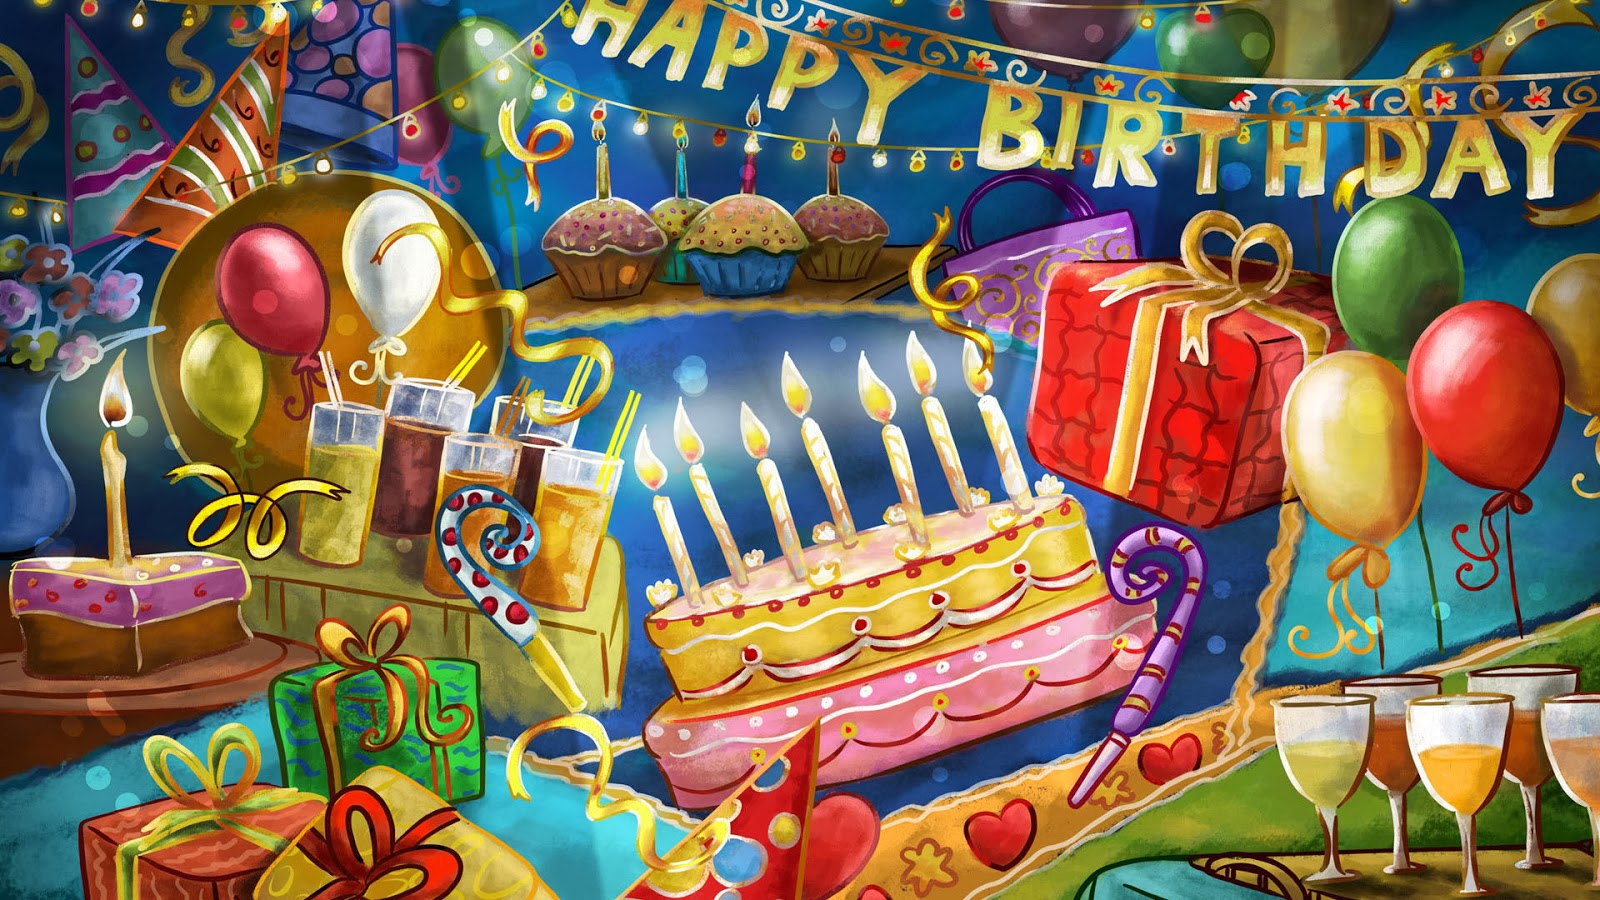 birthday wishes images free download ; happy-birthday-wishes-wallpaper-free-download